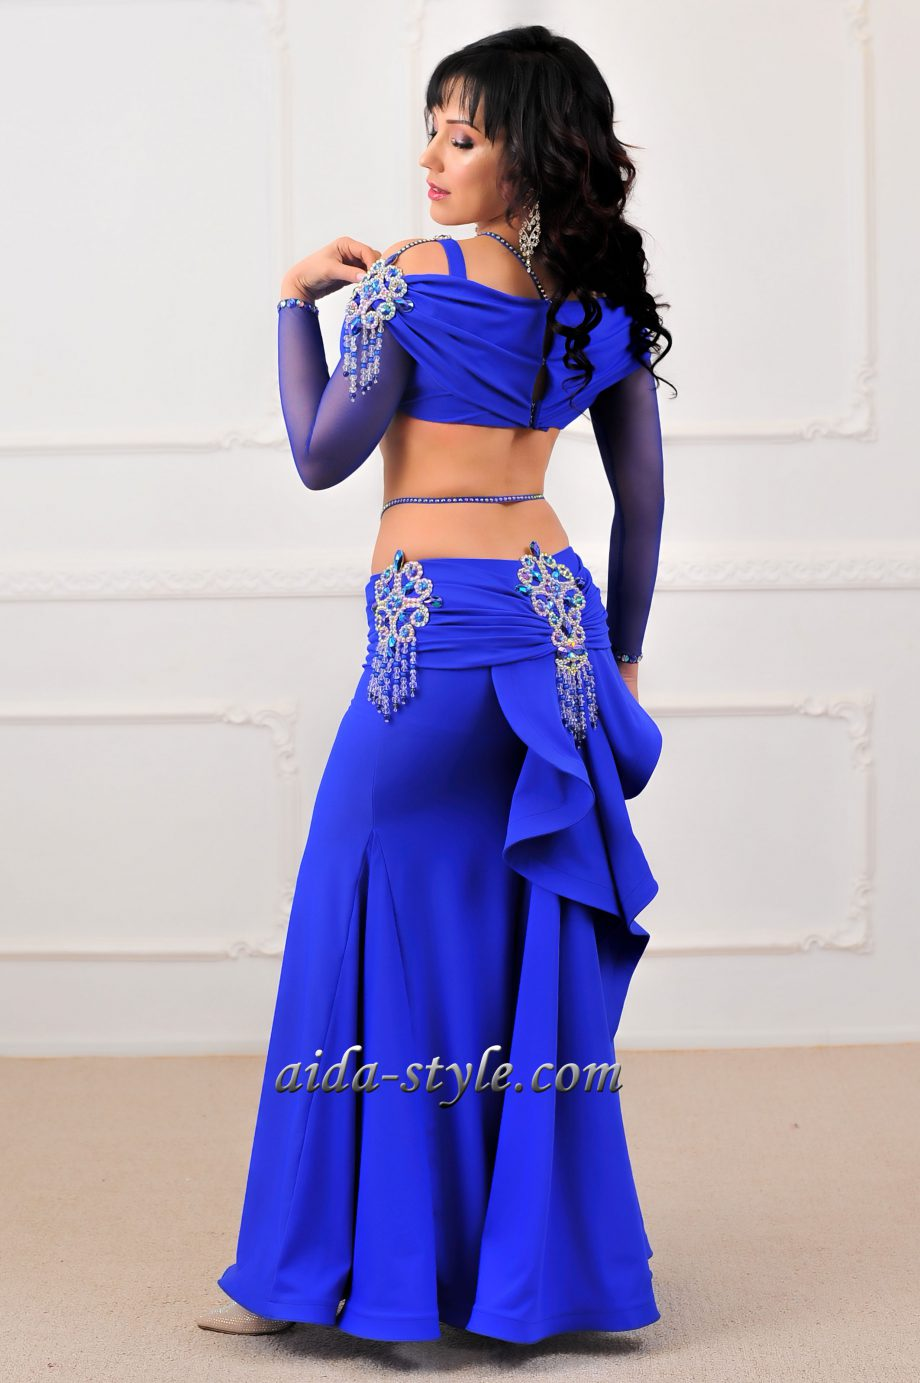 blue belly dancer outfit